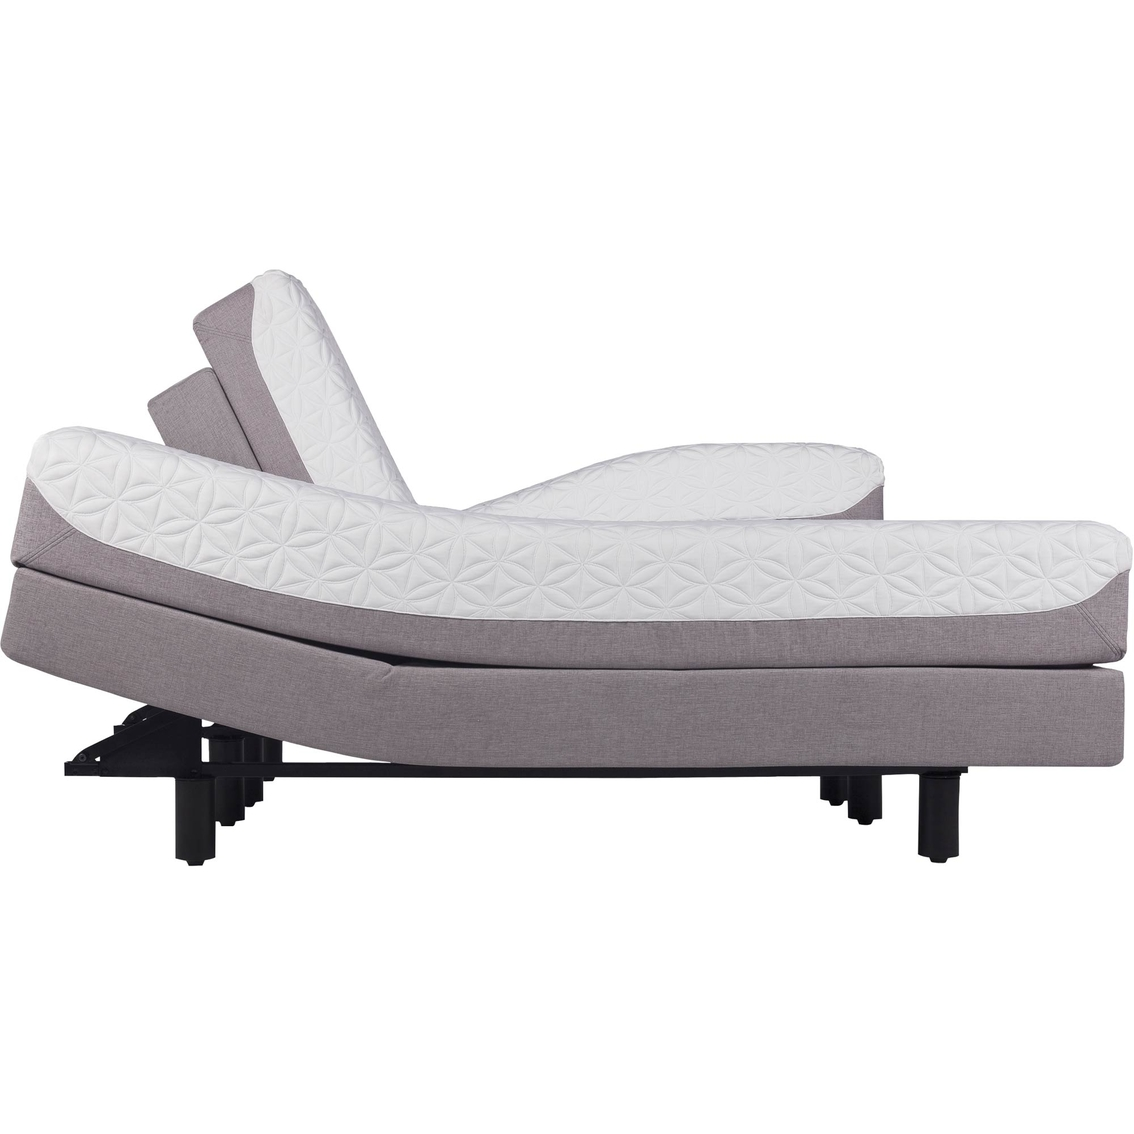 Tempur Pedic Tempur Flex Prima Mattress Set With